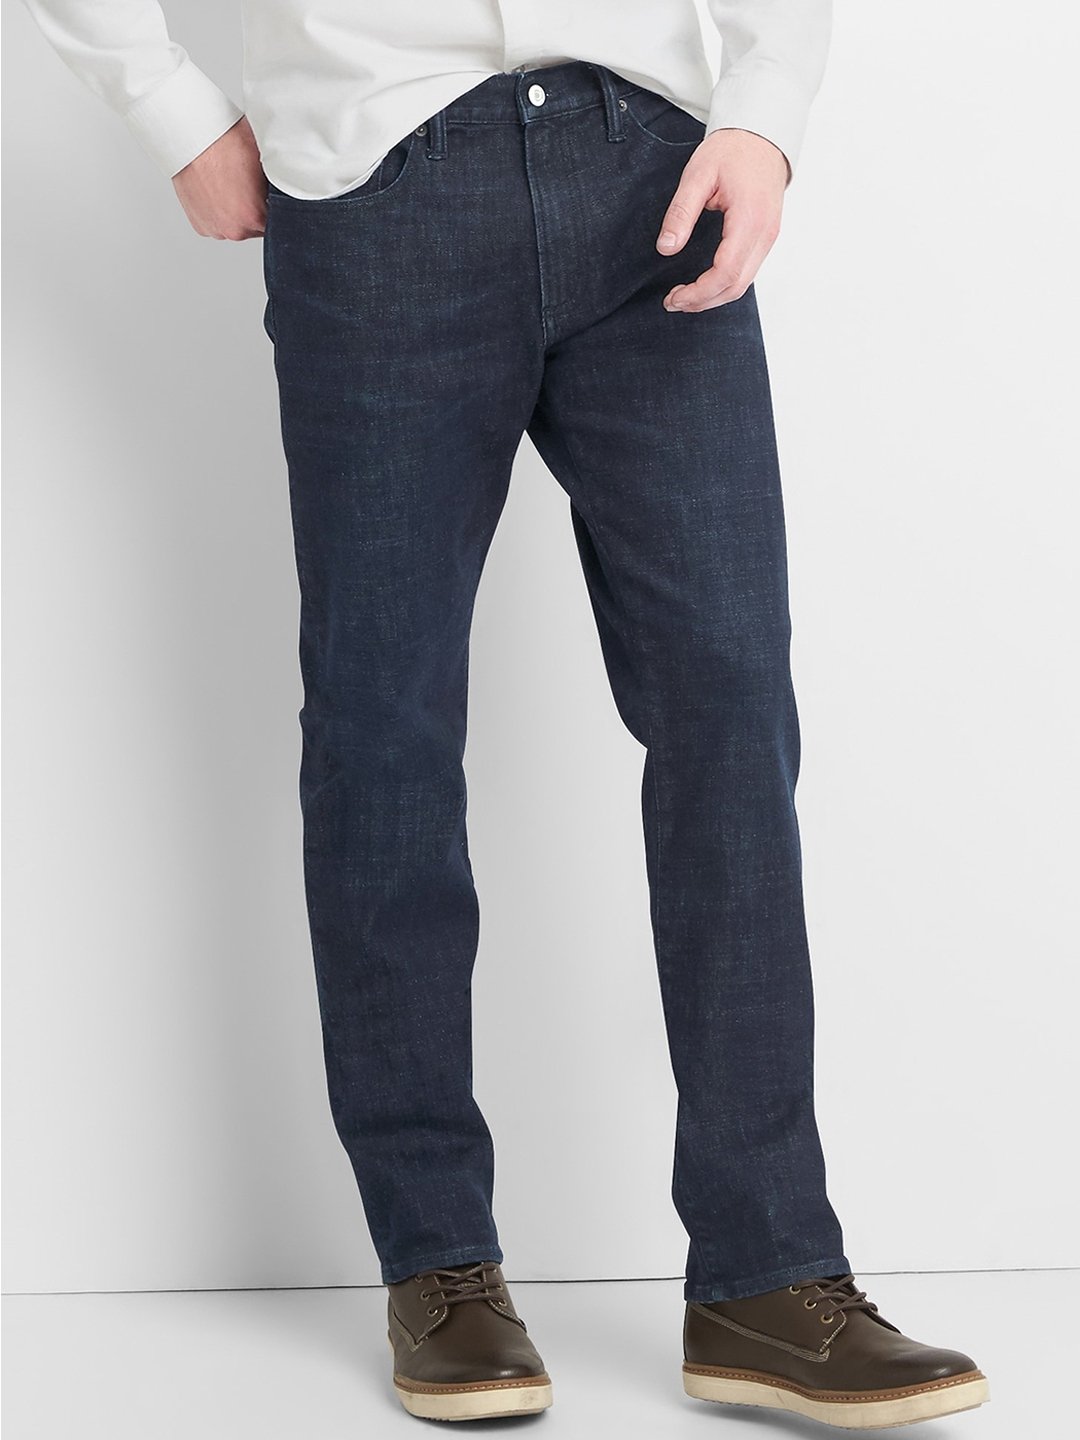 4c91fa4c179bf Buy GAP Men Blue Thermolite Slim Fit Jeans With GAP Menflex - Jeans ...